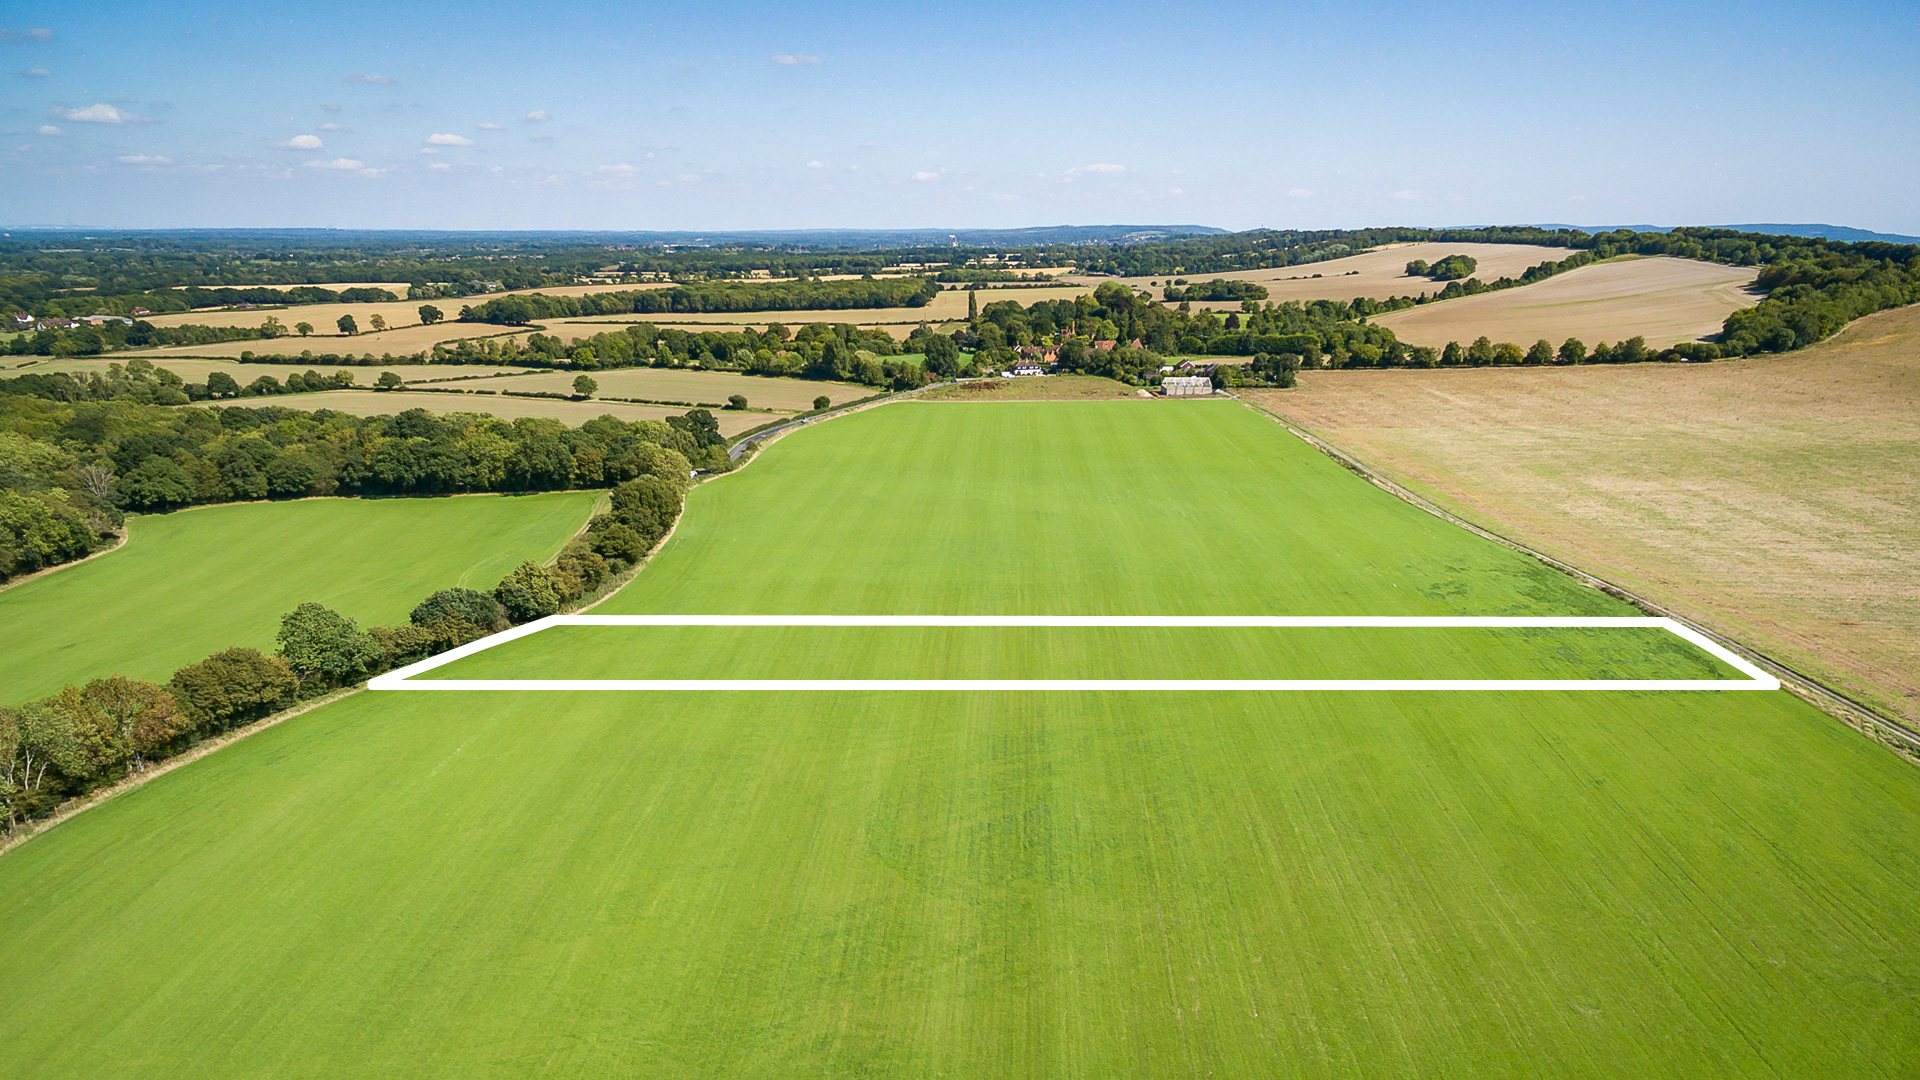 Land for sale in Guildford aerial view